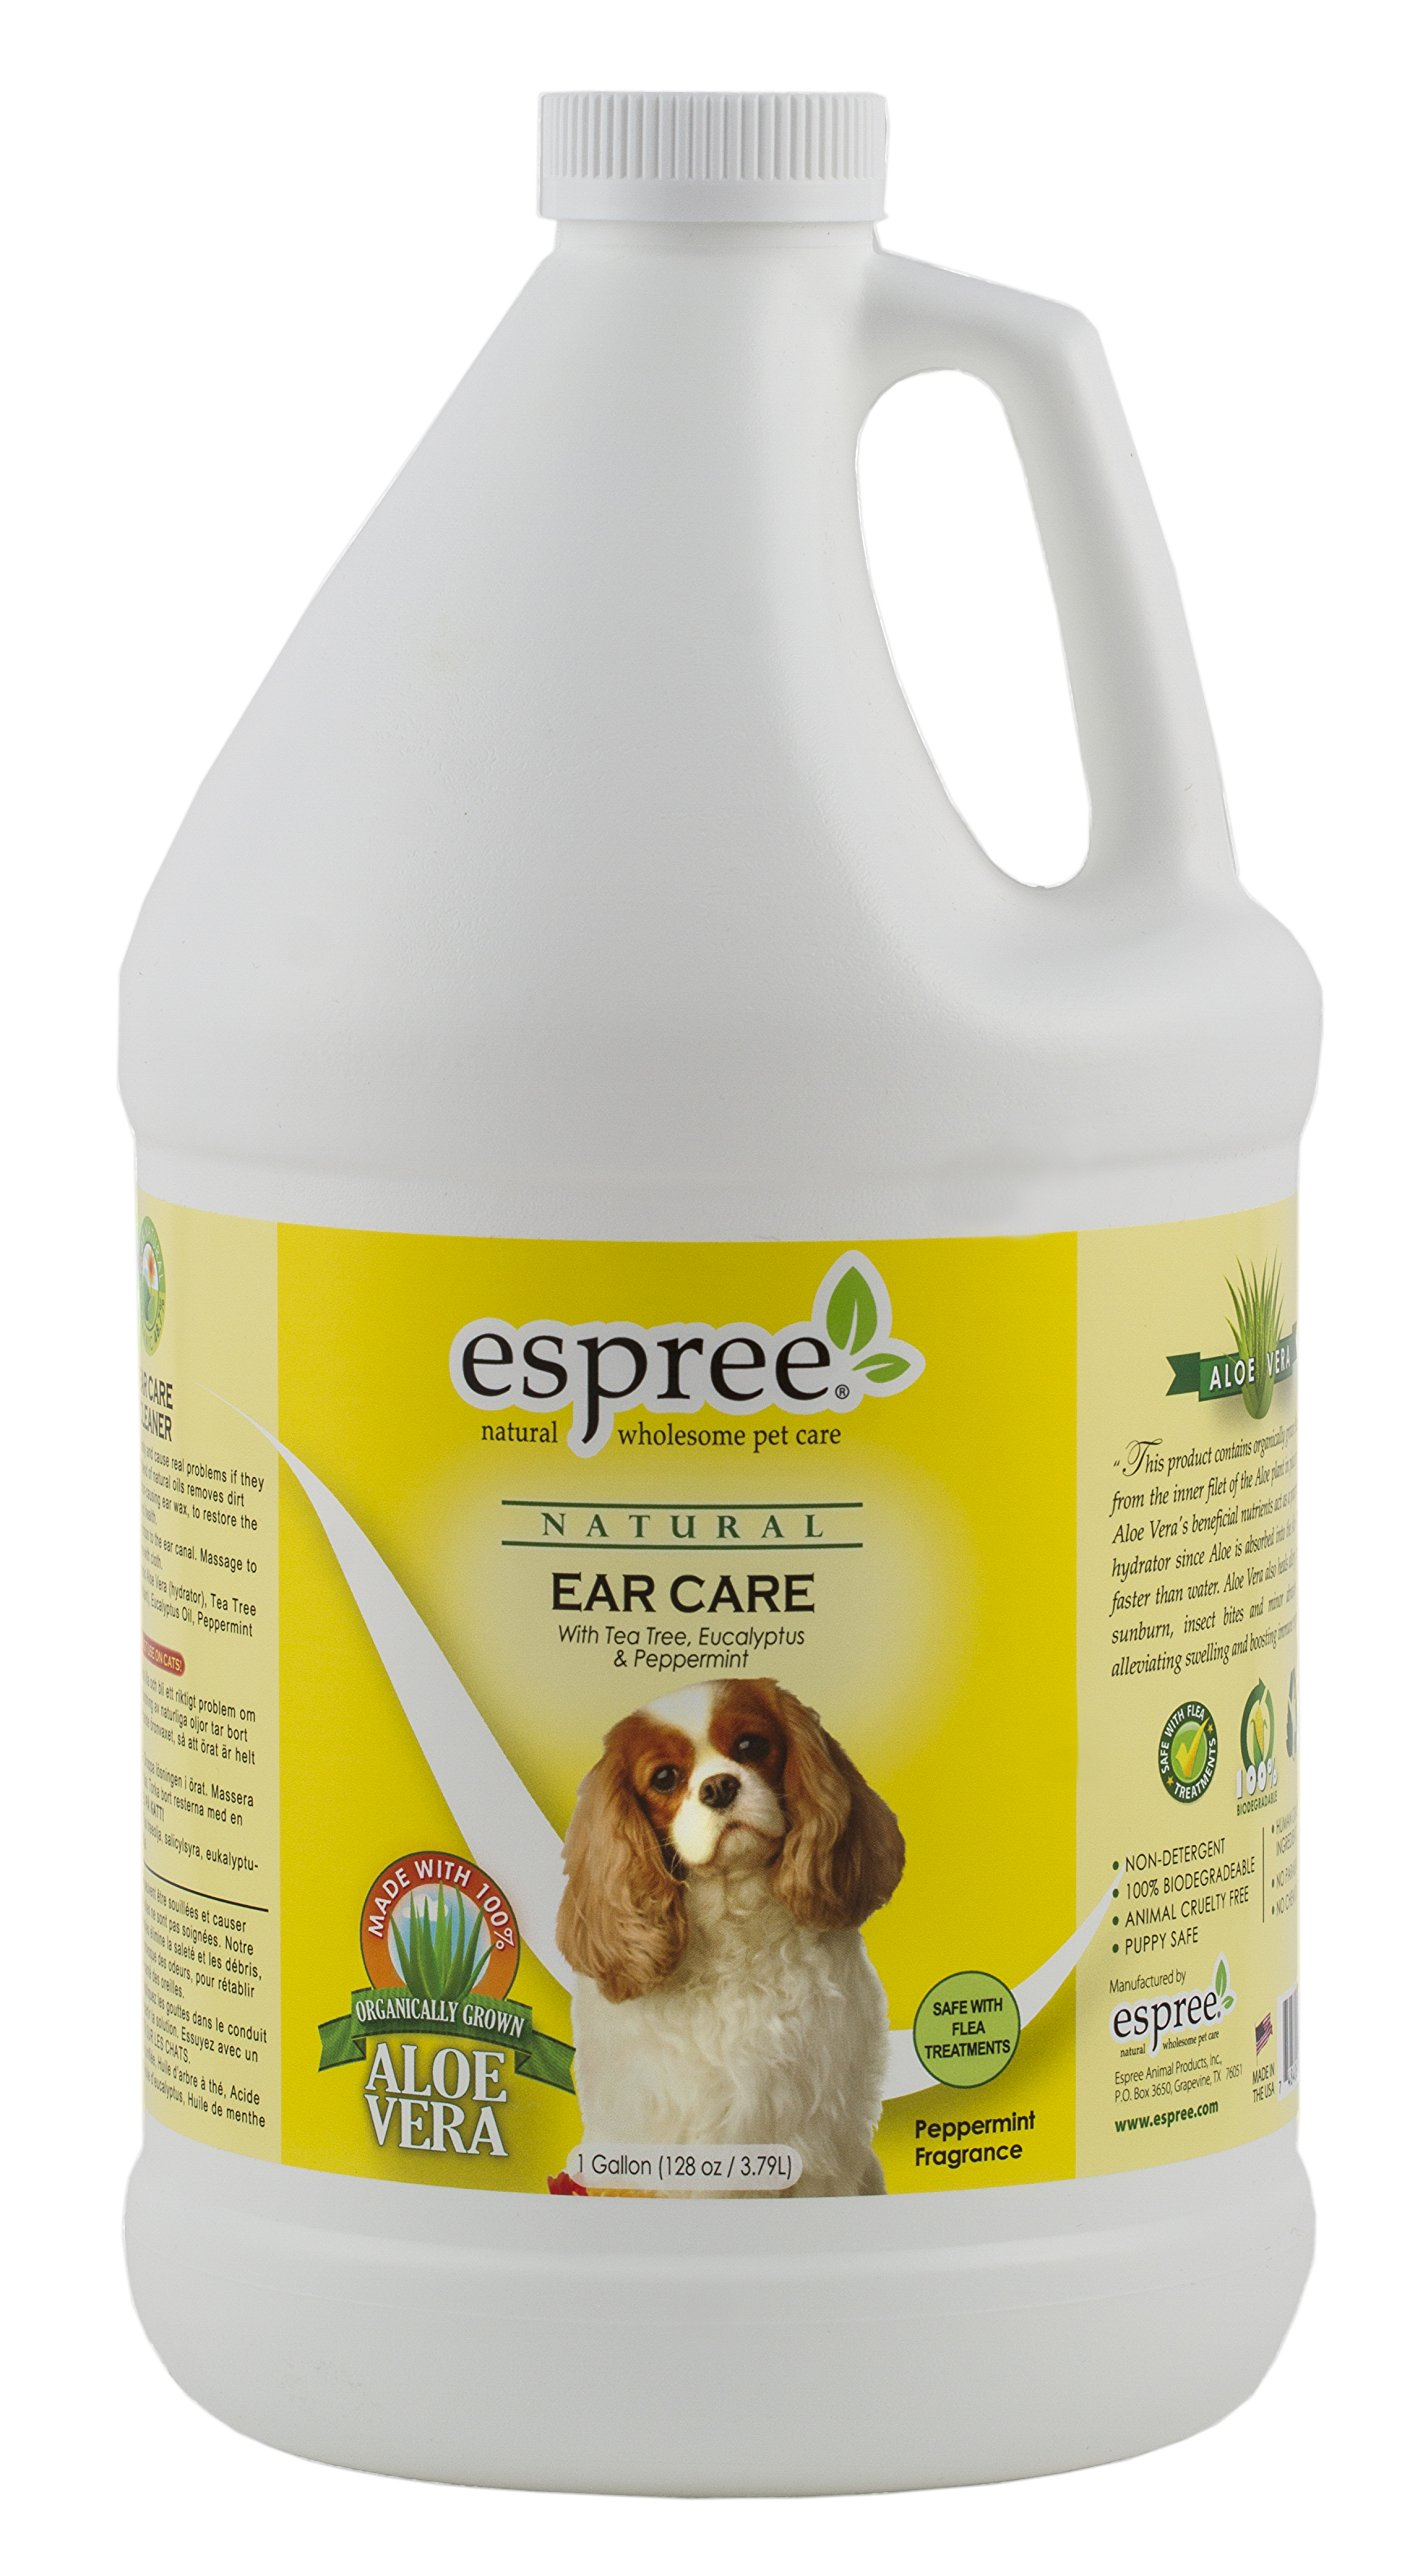 Espree Ear Care Cleaner, 1 gallon